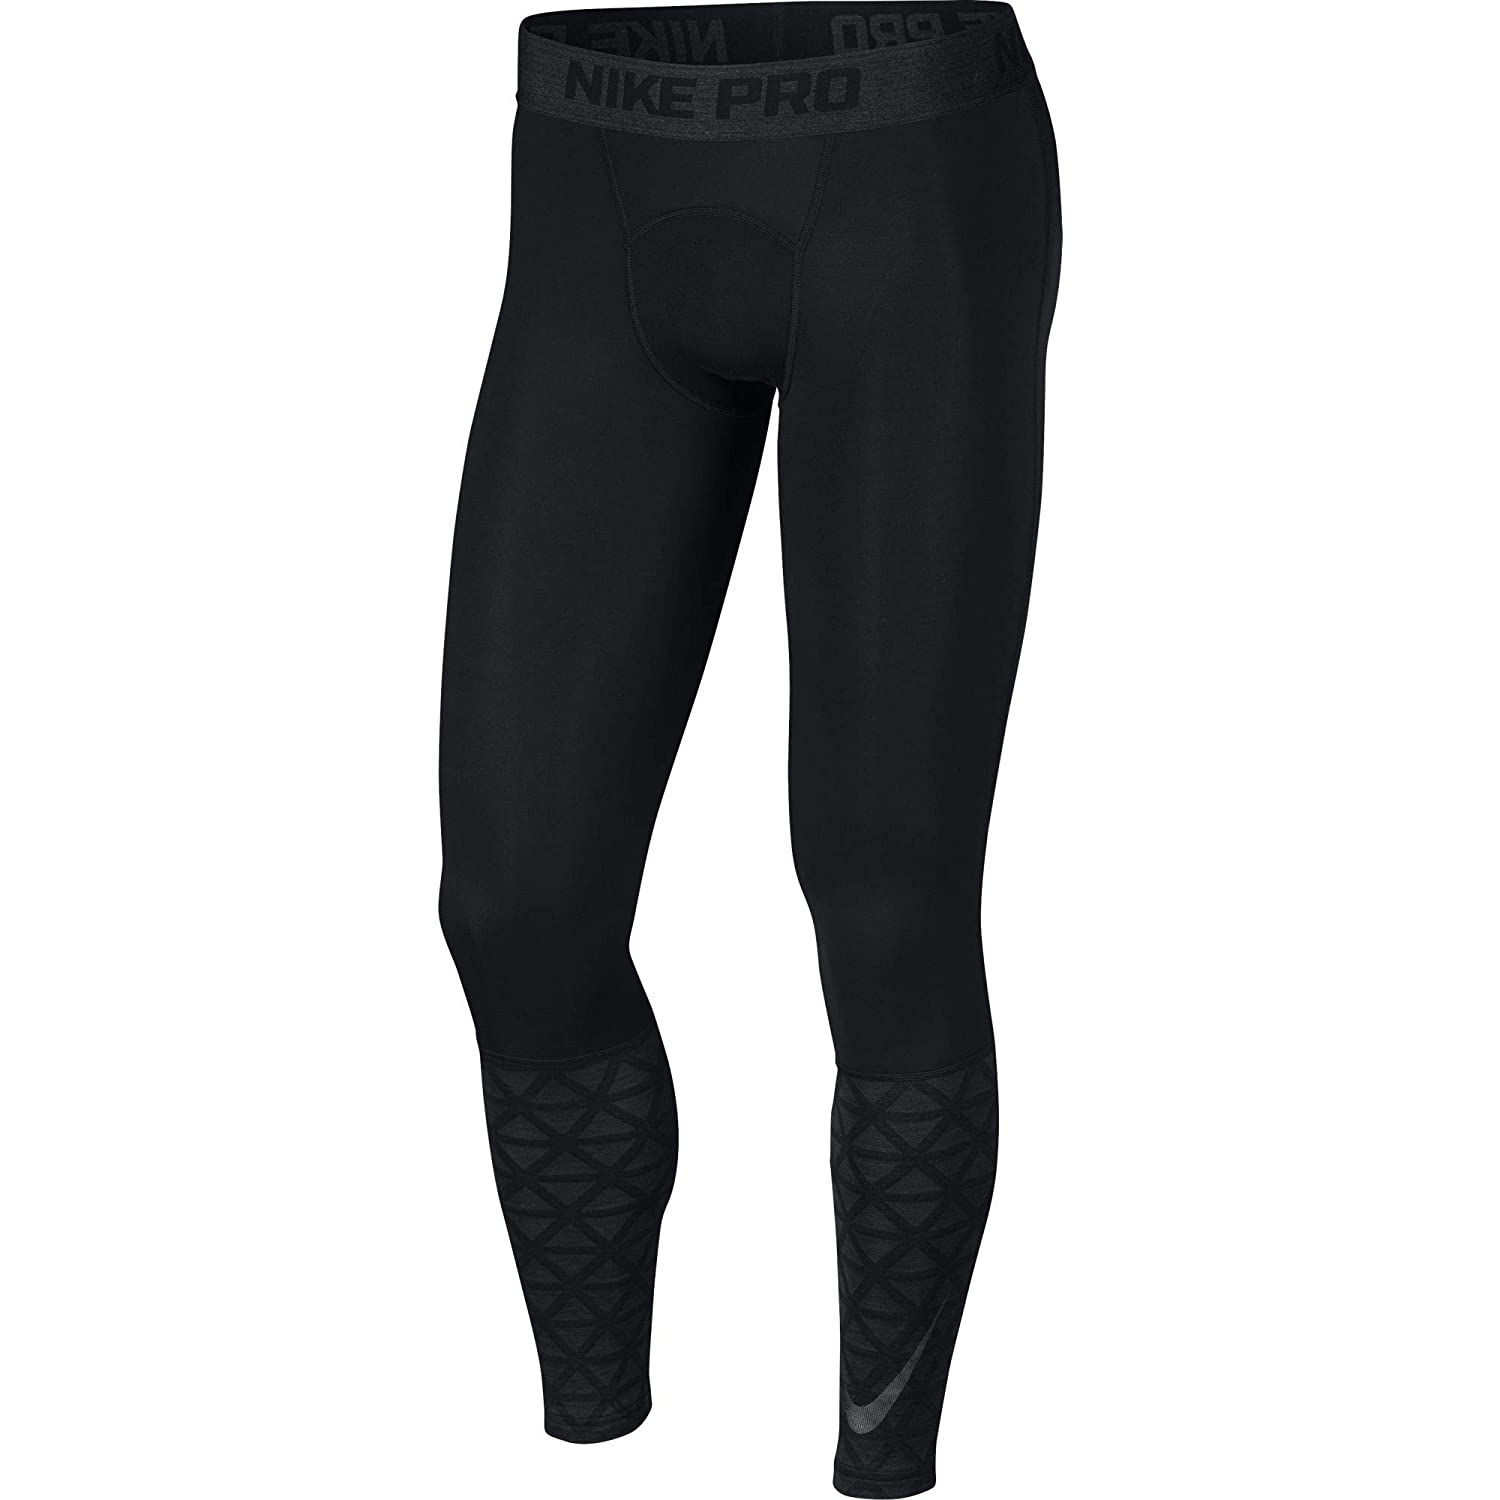 b8569b1488bd4b Amazon.com : NIKE Men's Pro Tights : Clothing